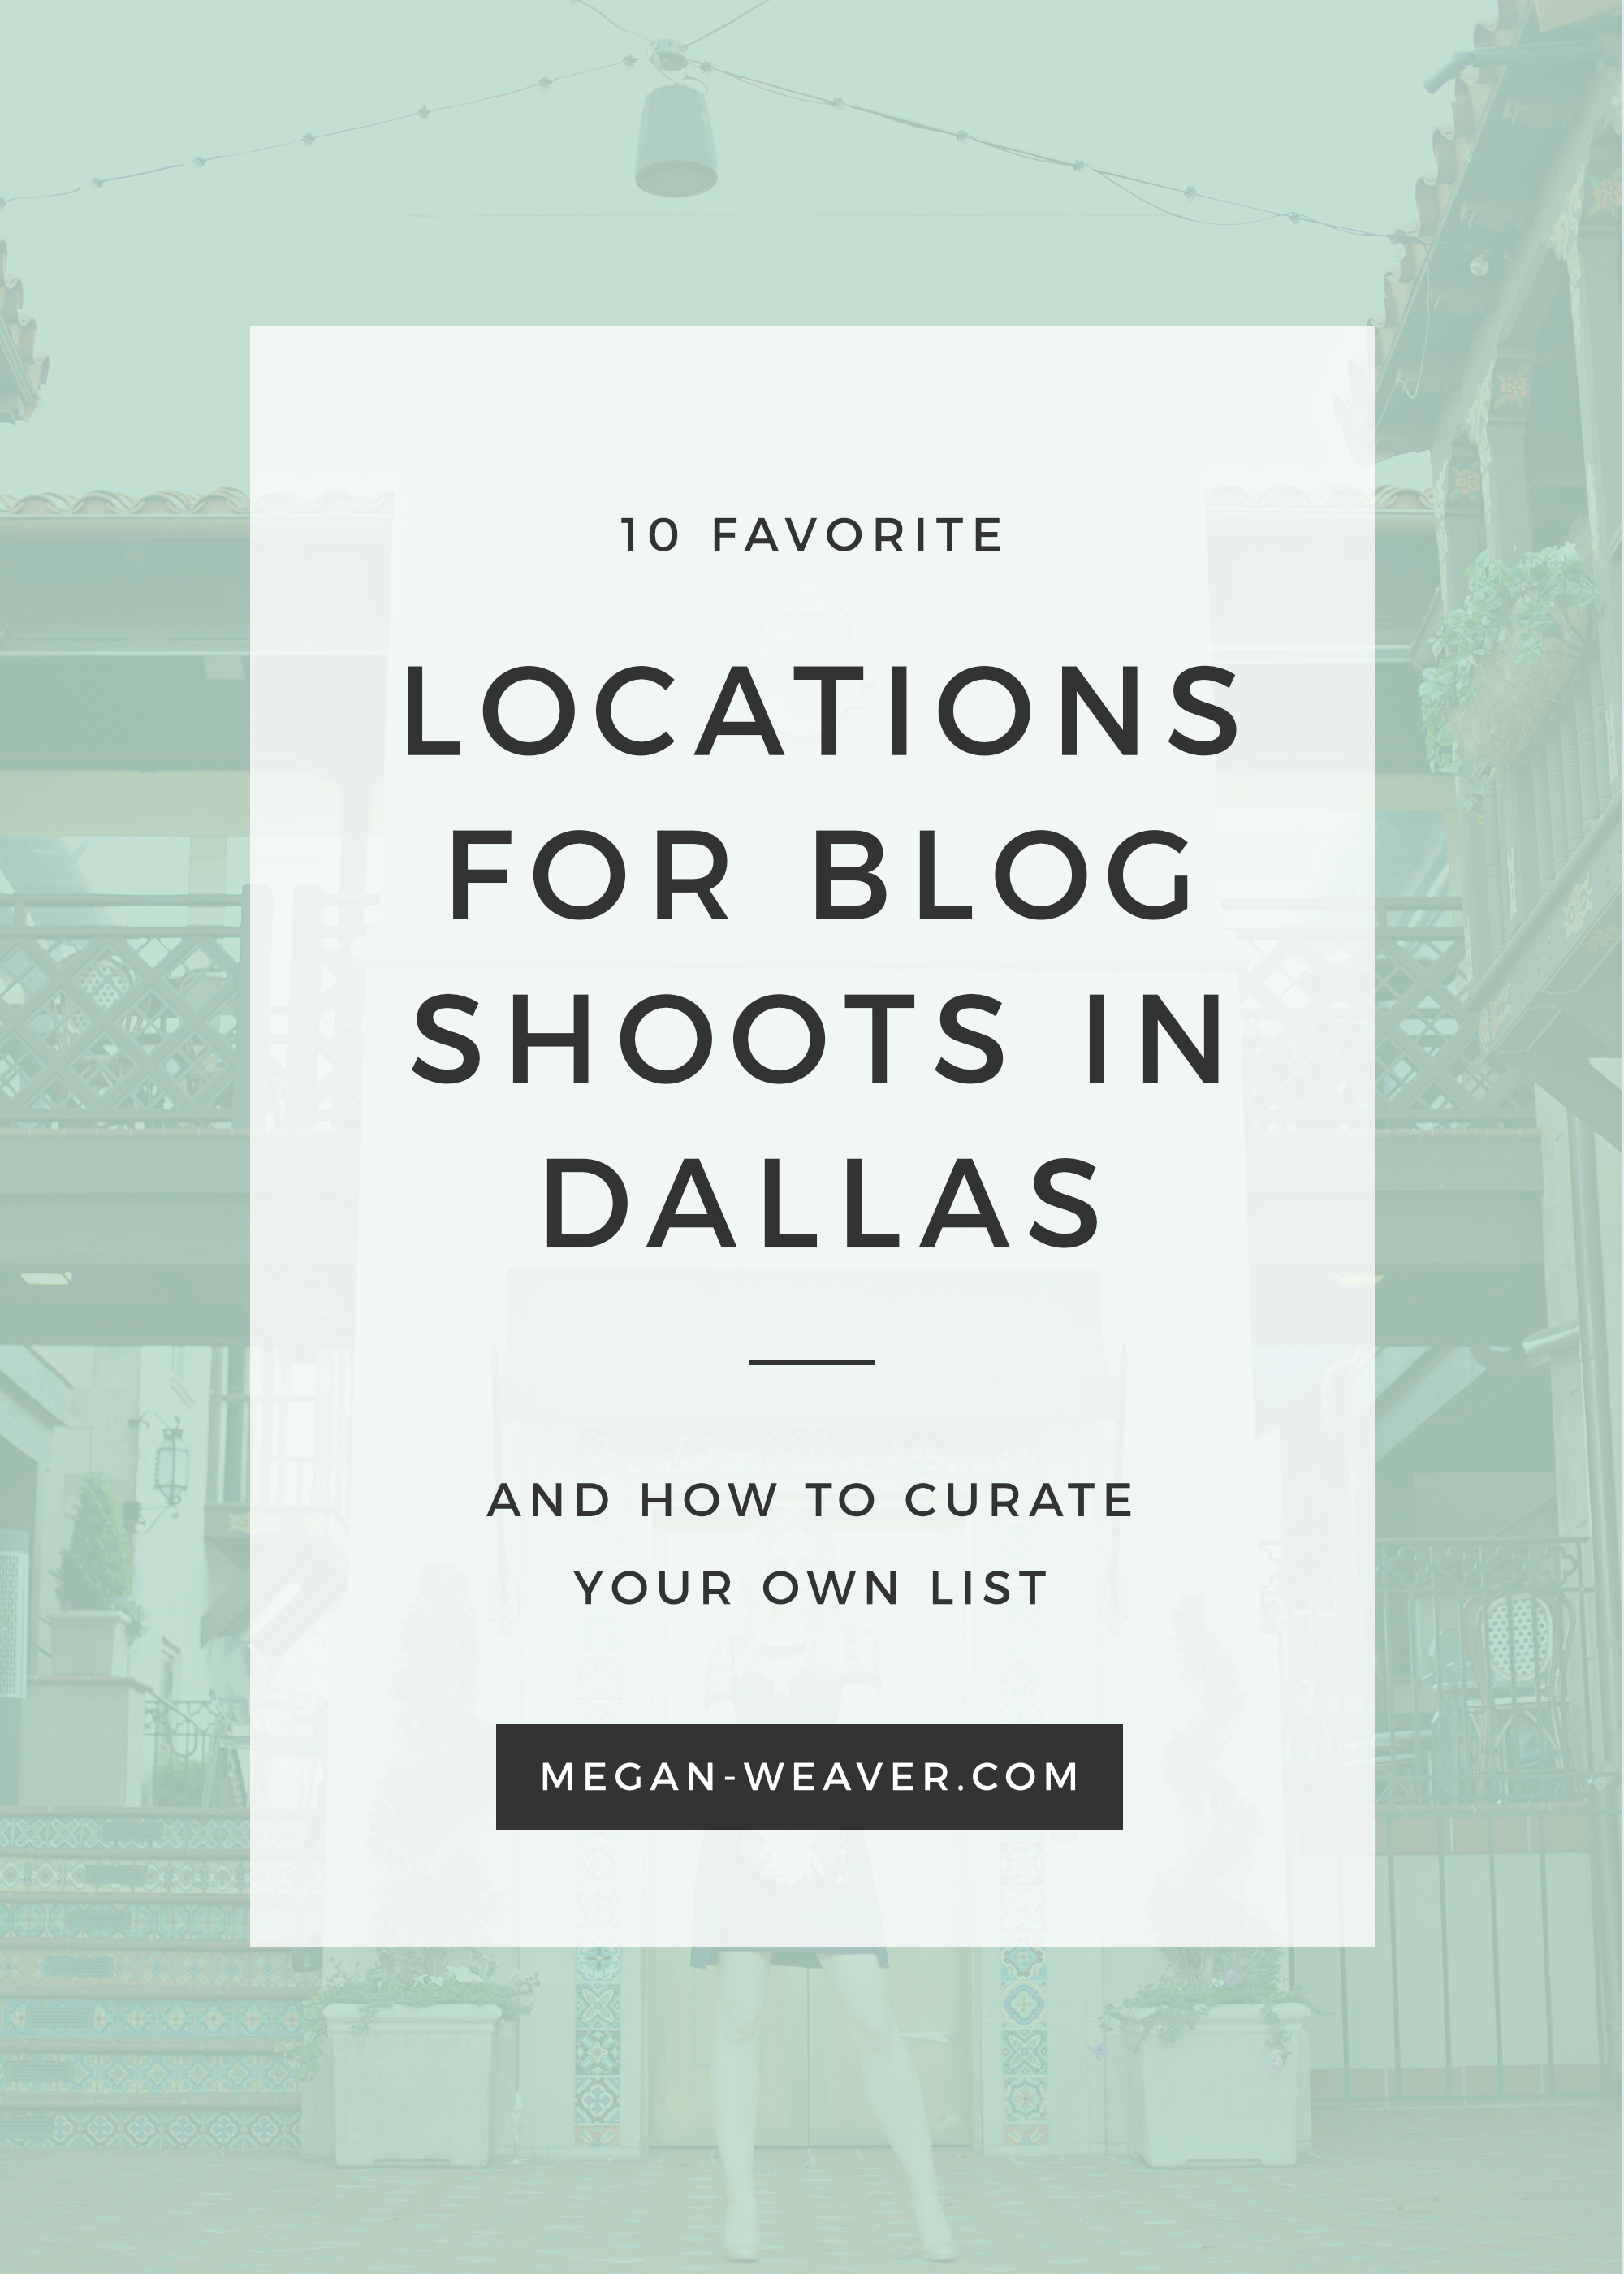 Calling all Dallas photographers/bloggers: If you're in need of a cool spot to shoot, I'm sharing TEN of my favorites on the blog — as well as tips on how to find your own!